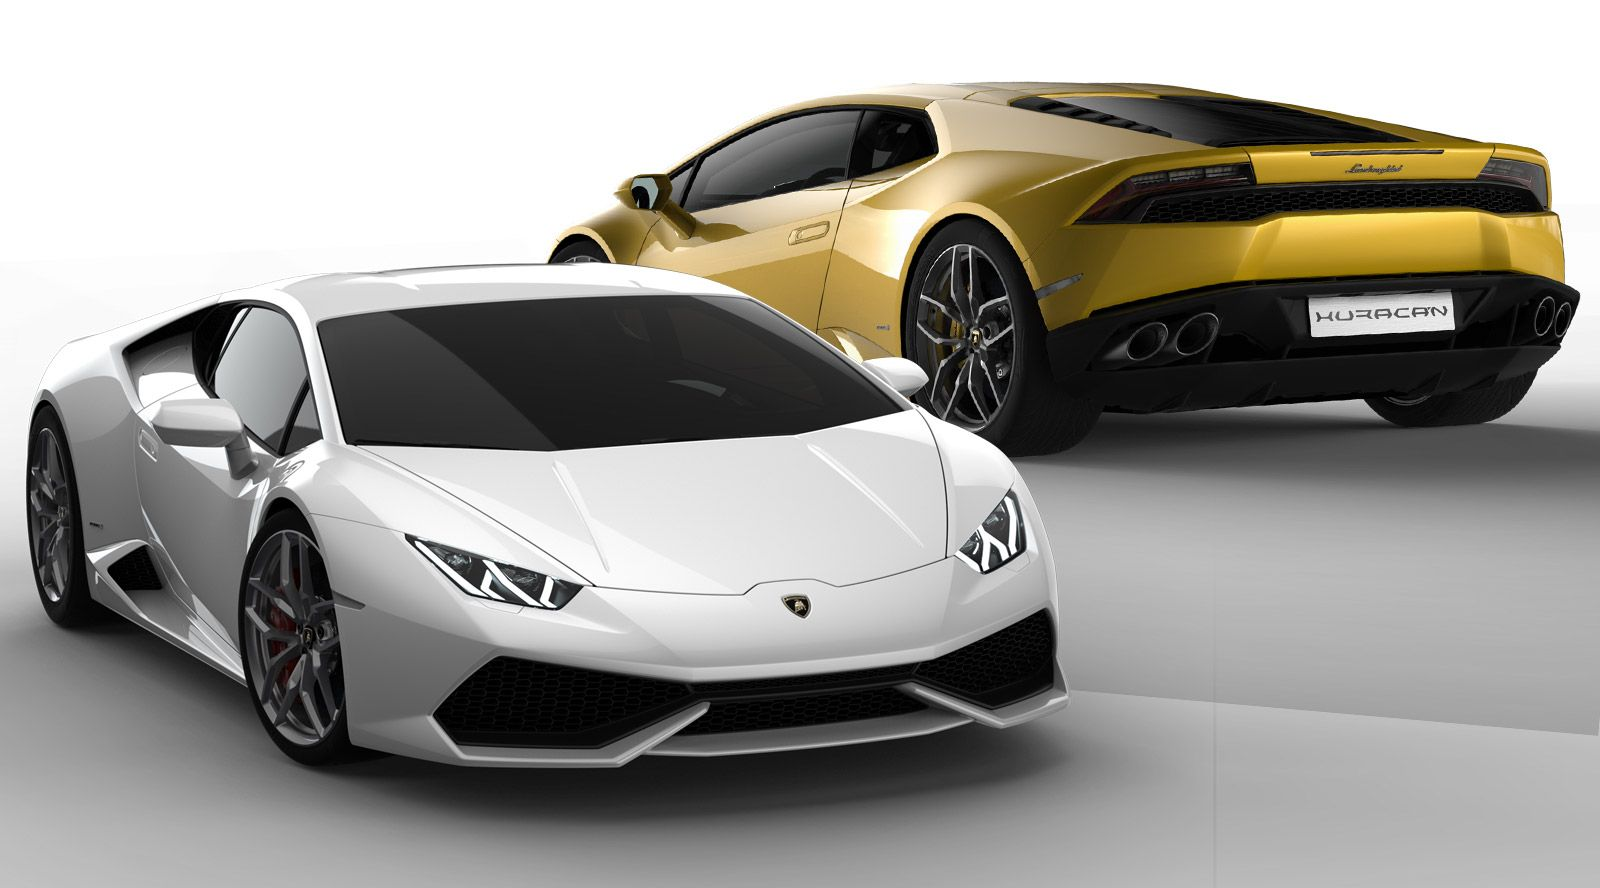 Huracan gold and silver wallpaper 10975